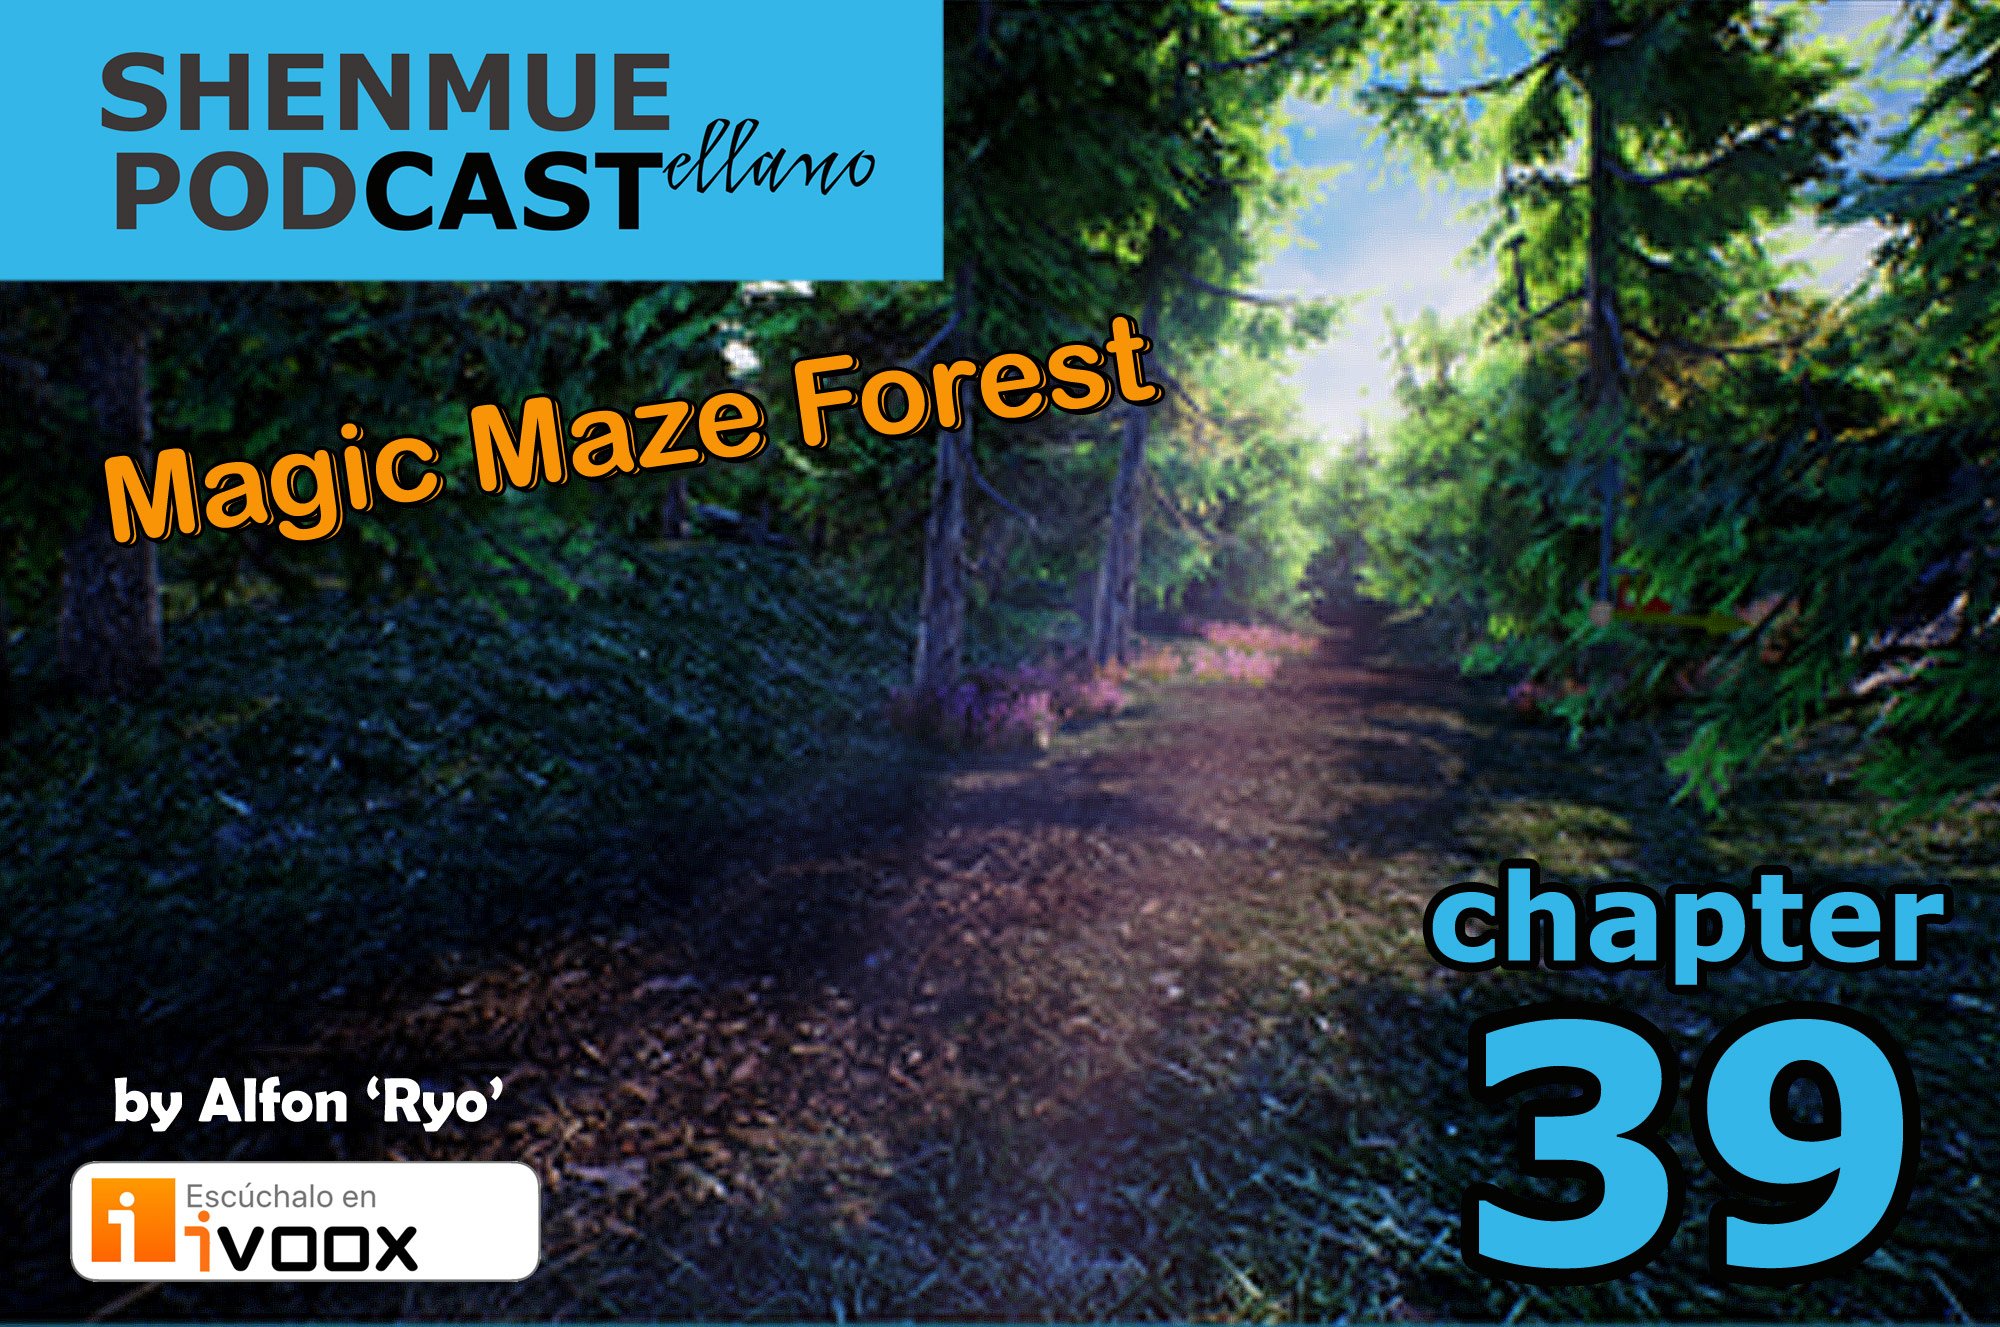 podcast sobre shenmue shiling lin shenmue 3 miko sinto maiden chinese